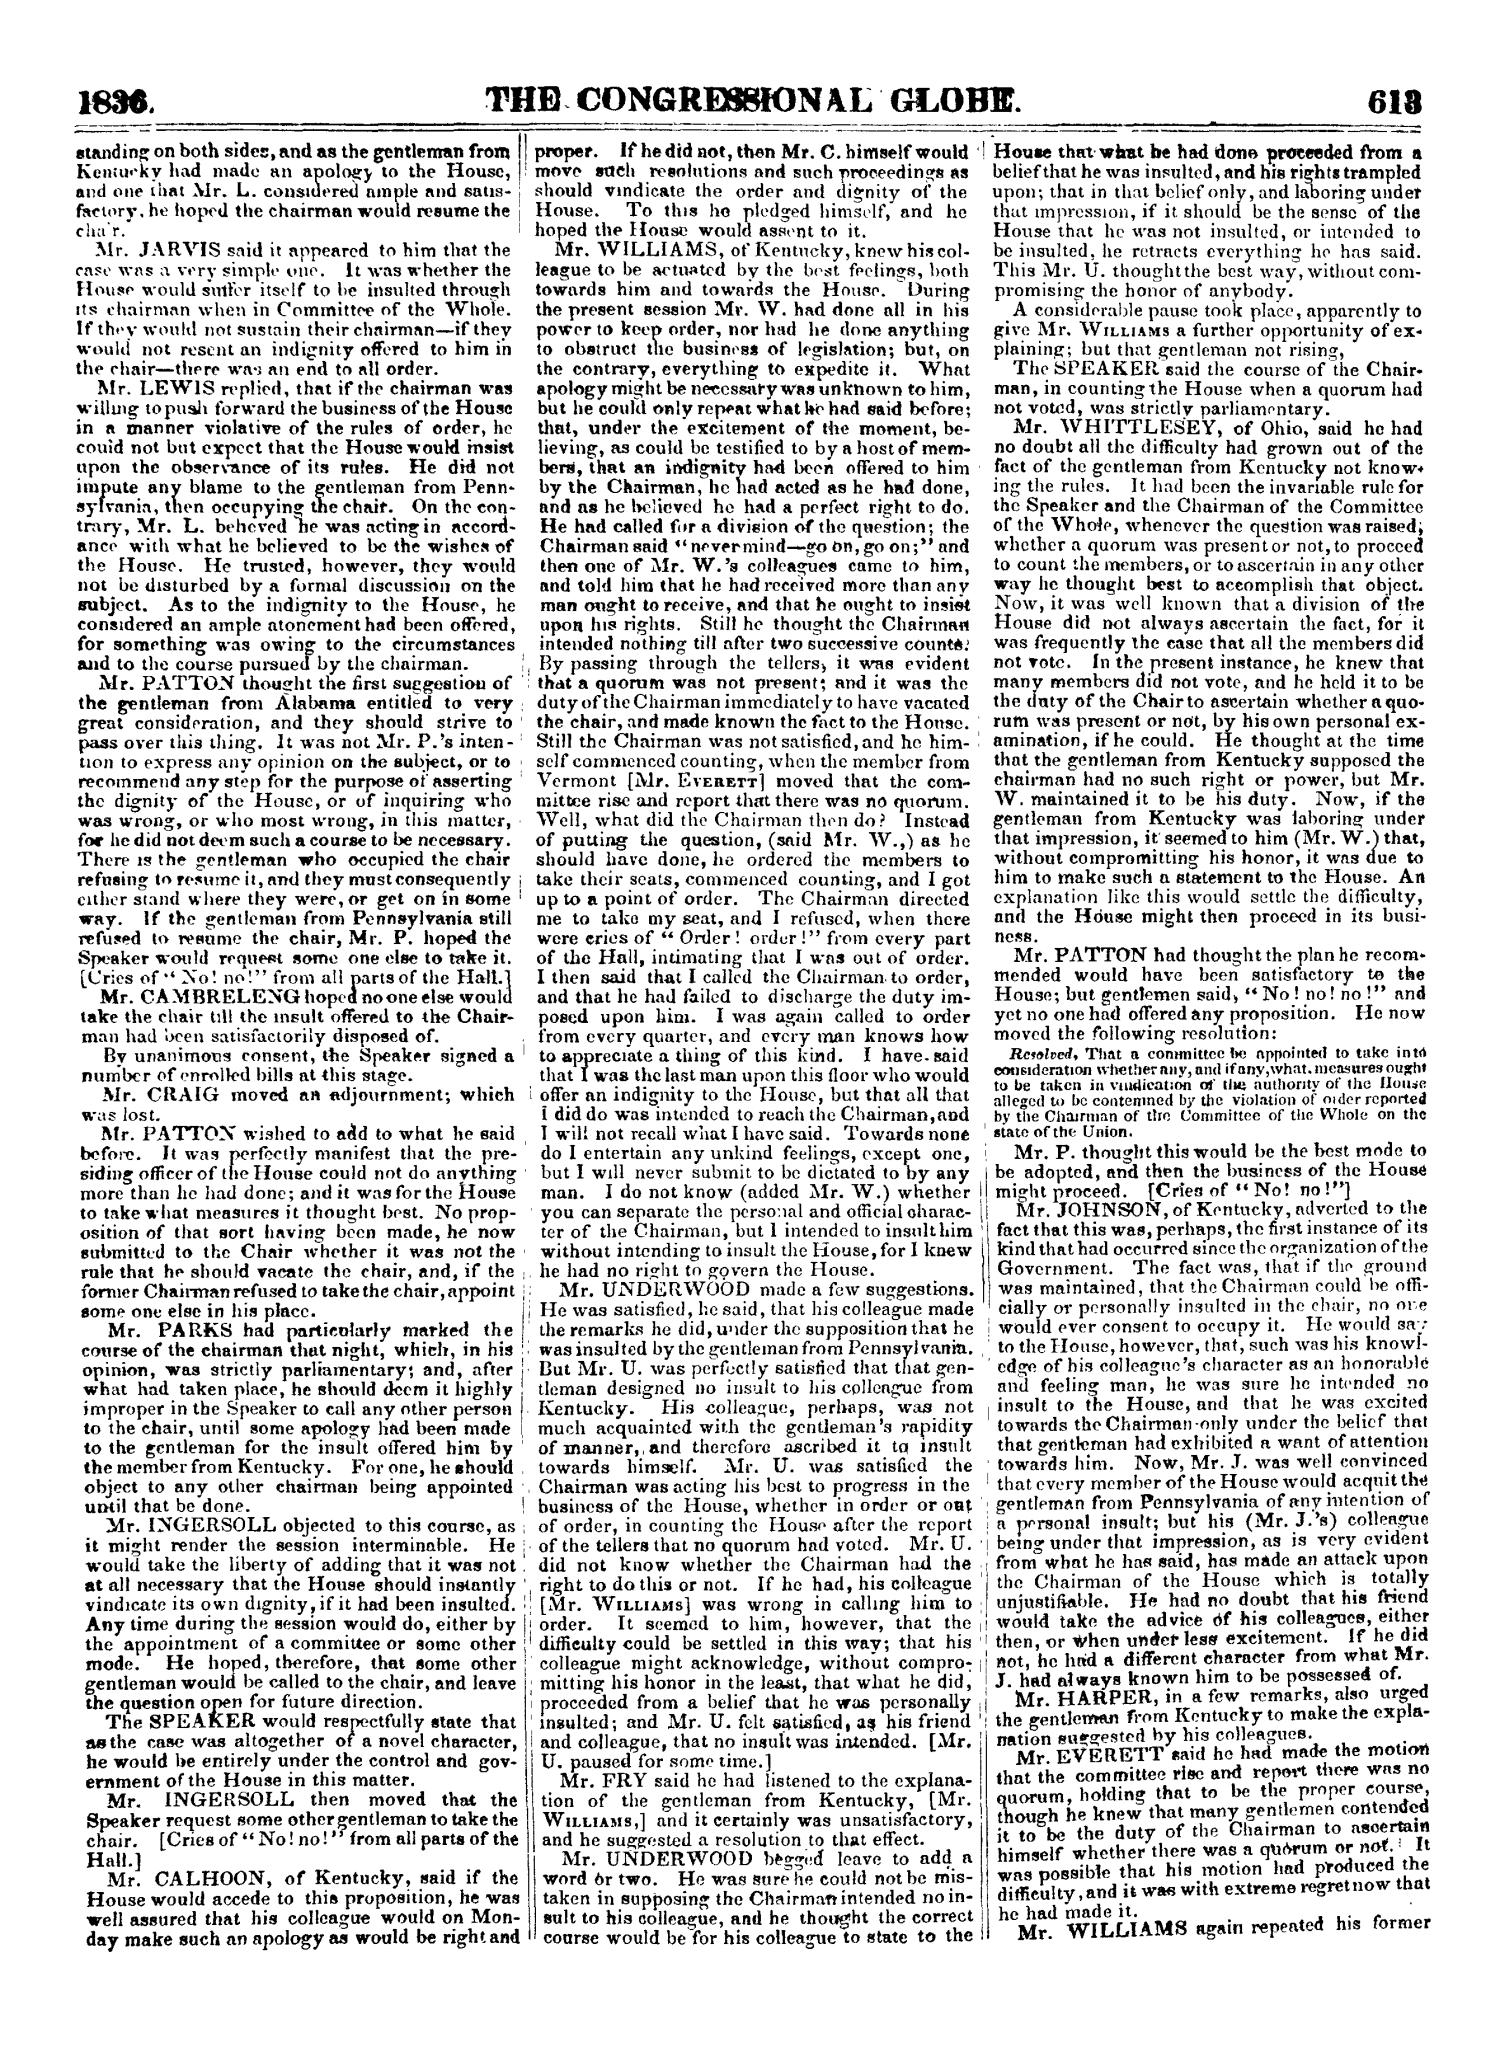 The Congressional Globe, Volume 2-3: Twenty-Fourth Congress, First Session                                                                                                      613